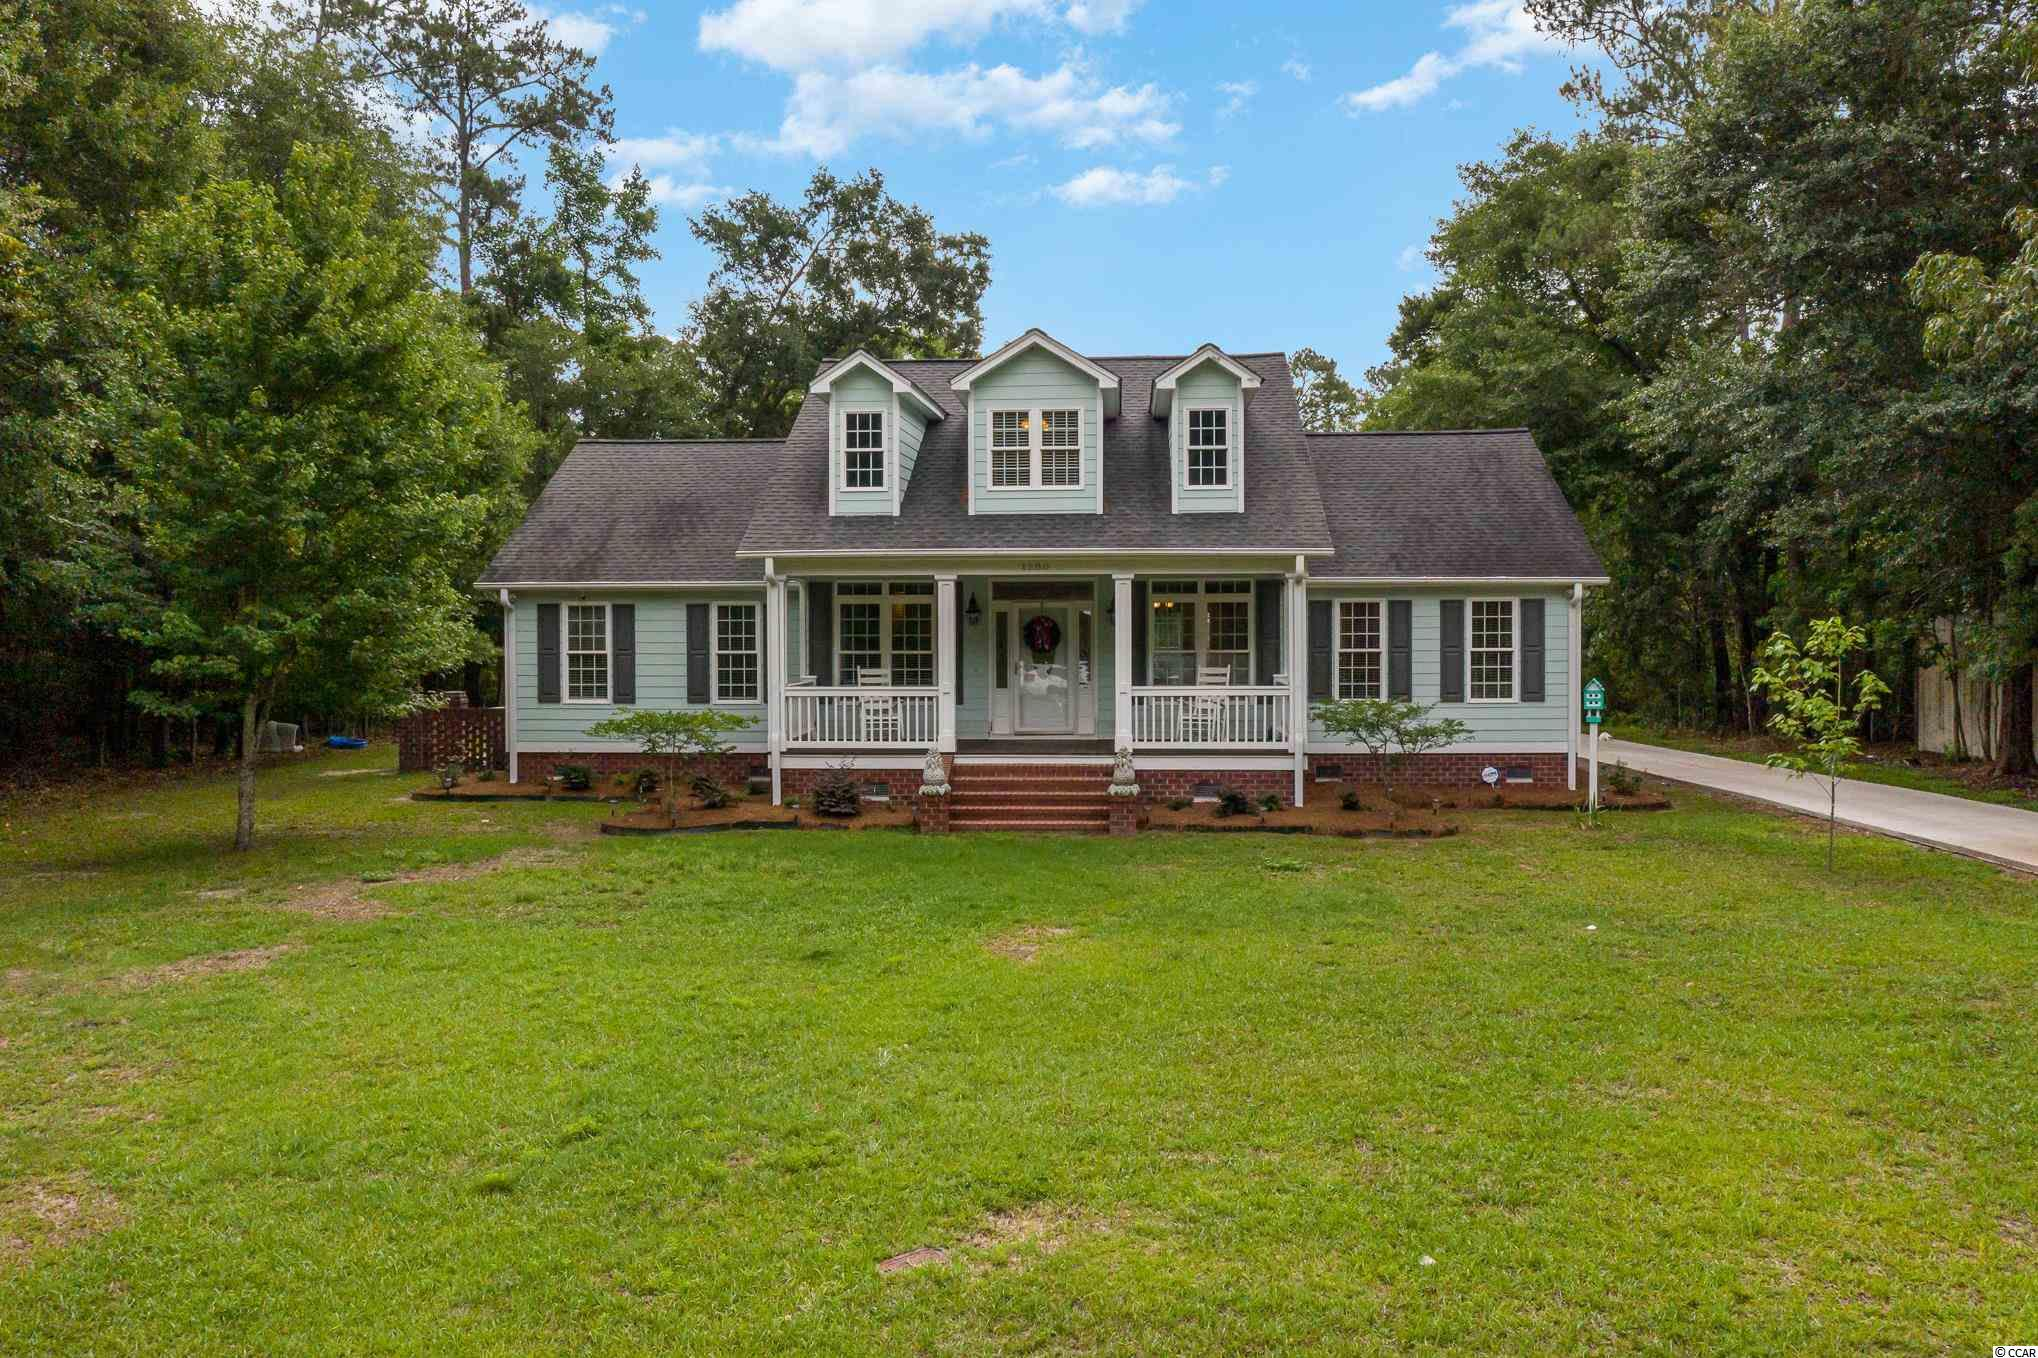 Ranch-style River home with 3 spacious bedrooms and 2 full bathrooms on a direct River Front lot. This beautiful custom built home sits on 0.55 Acres of land that backs up to the Waccamaw River. Has never flooded due to higher elevation of land. This home offers tons of privacy for folks who want a true country living in a quiet neighborhood. Approx. 15 minutes from Downtown Conway & 20 minutes from Myrtle Beach. 1.5 miles away from Shaftesbury Golf Course & no HOA.